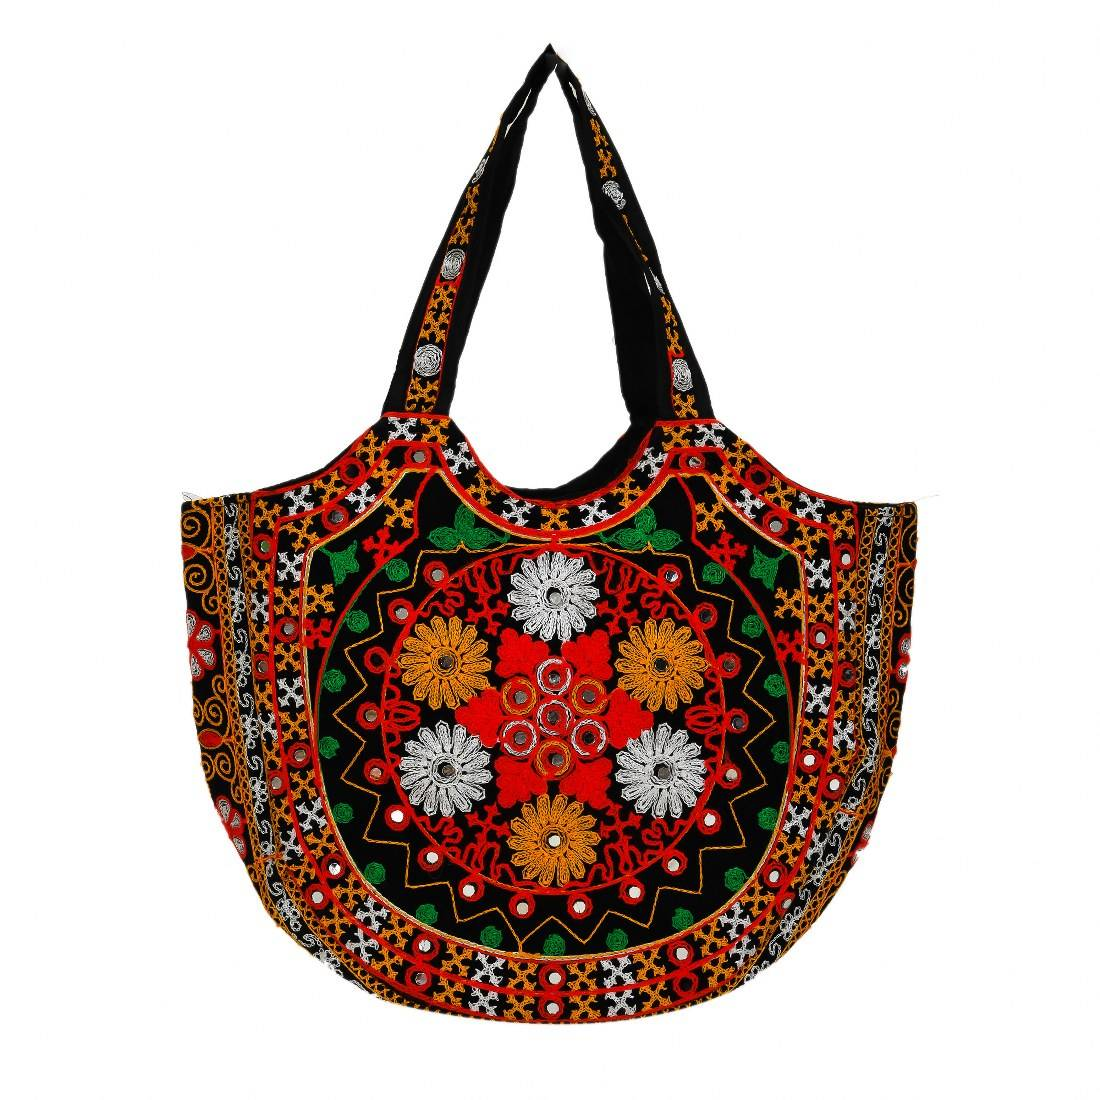 Vintage Bohemian Maroon Work Maroon Color Traditional Indian Handmade Handbag (RBG-116-BLACK)